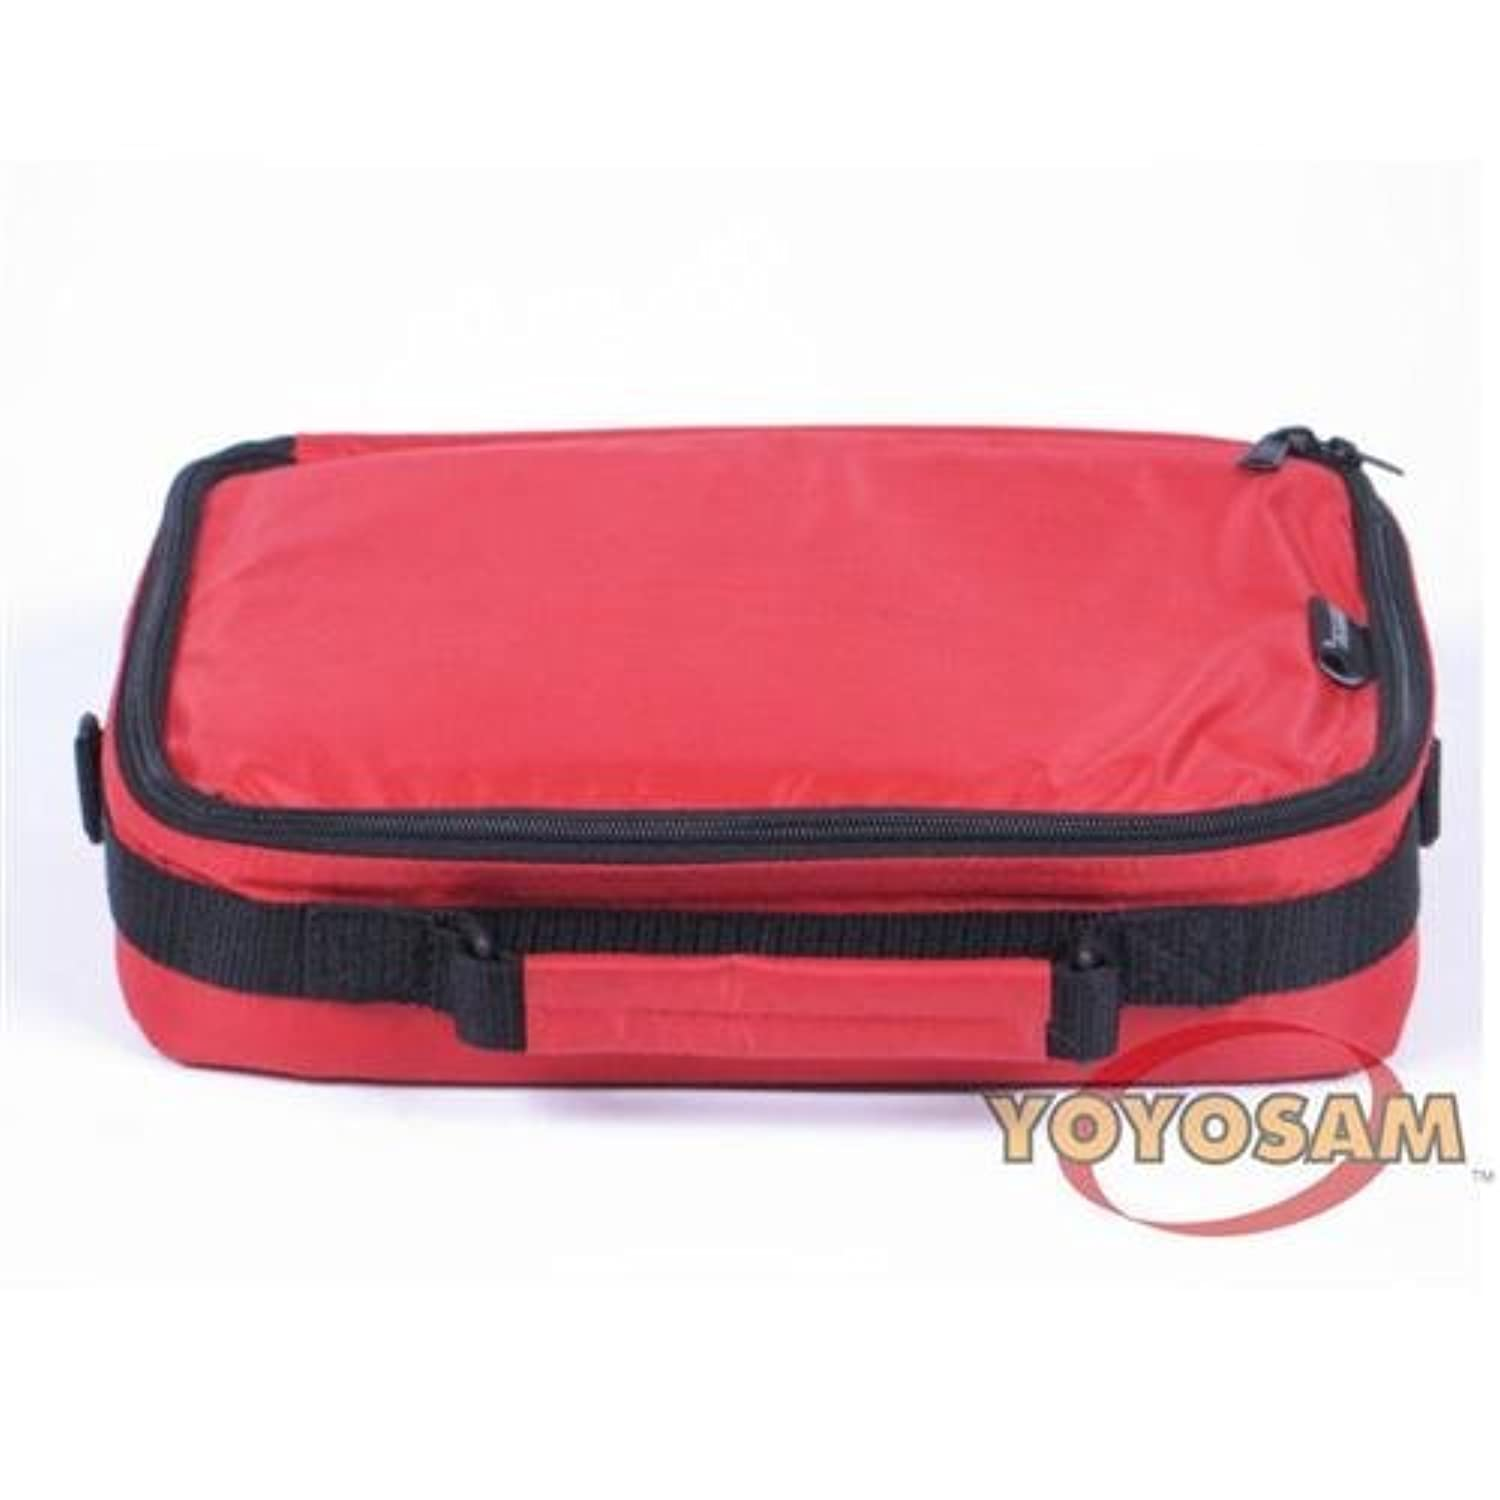 Zeekio Yo-Yo Bag - Red [並行輸入品]